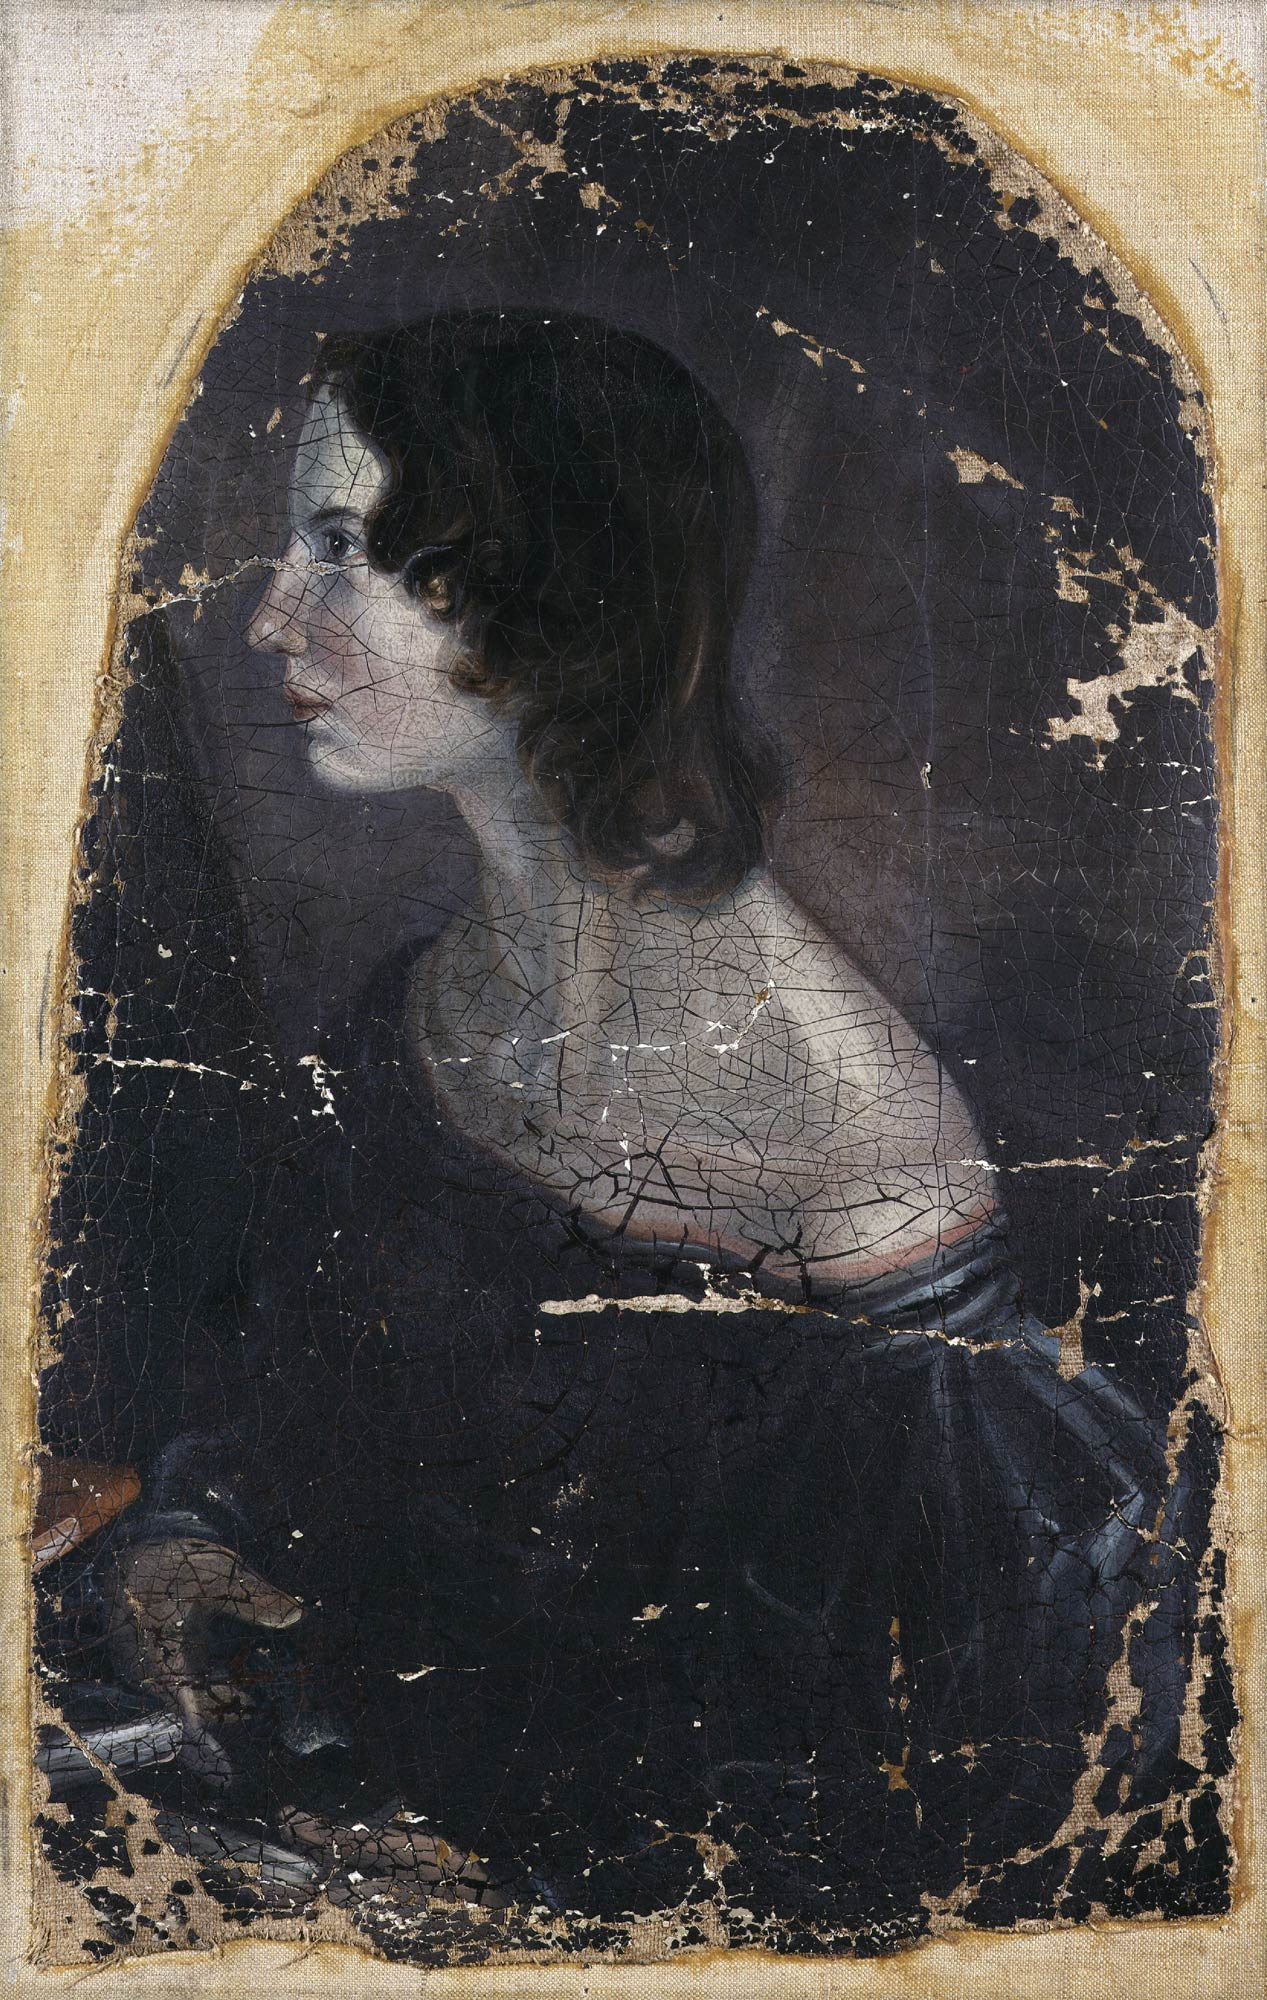 Emily Brontë, author of Wuthering Heights. Portrait by Patrick Branwell Brontë © National Portrait Gallery, London.